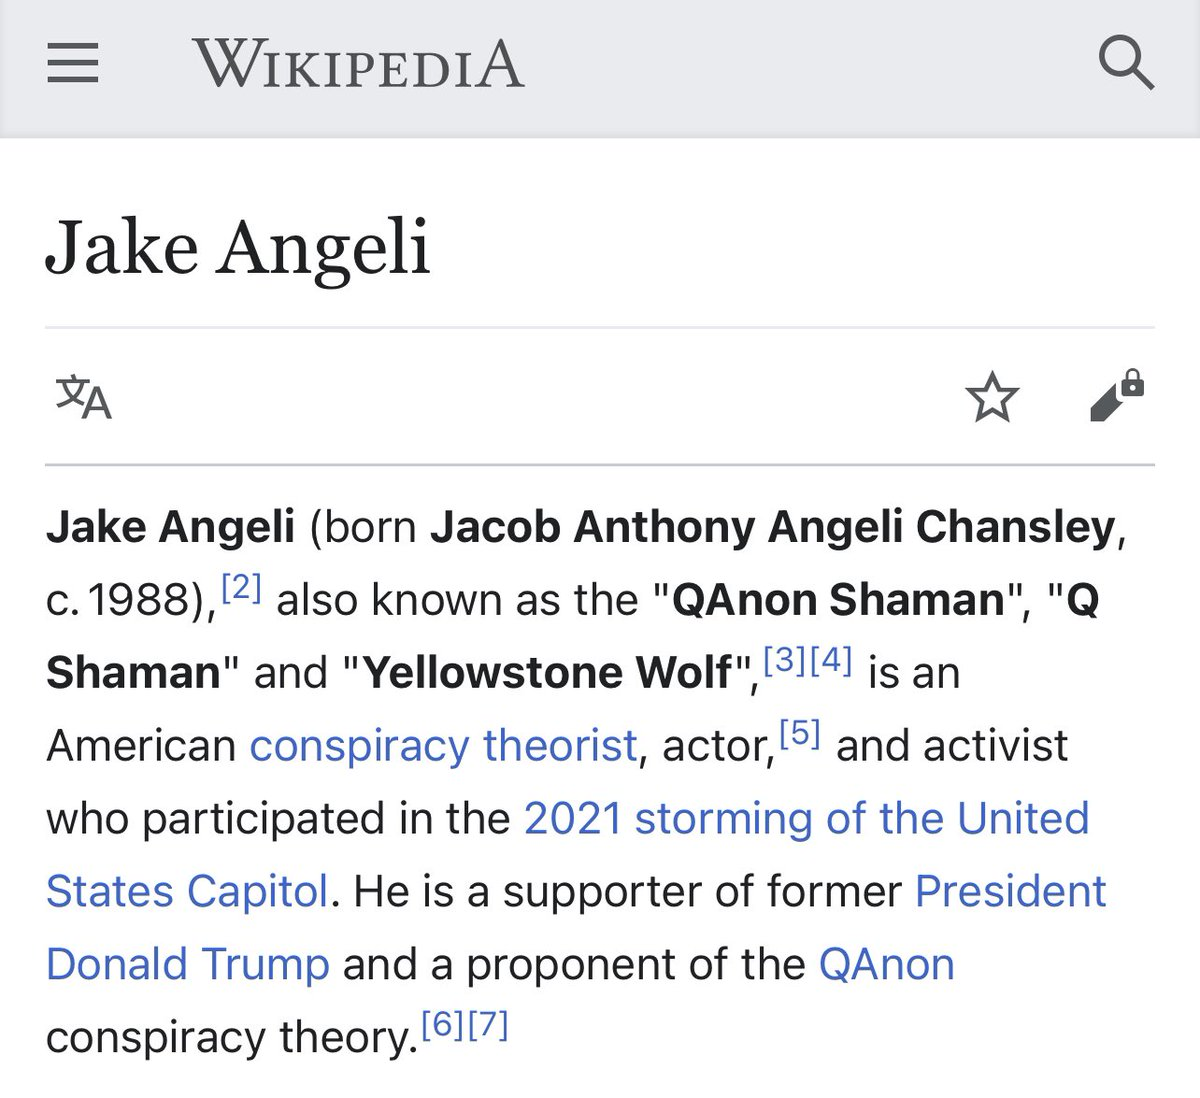 Jake Angeli (Jacob Chansley) on Wikipedia shows he's an actor, activist, and conspiracy theorist. AN ACTOR??? NOT hmm..maybe A TERRORIST? The page cannot be edited to correct it. Dumbfounded. https://t.co/86TD3Z656u